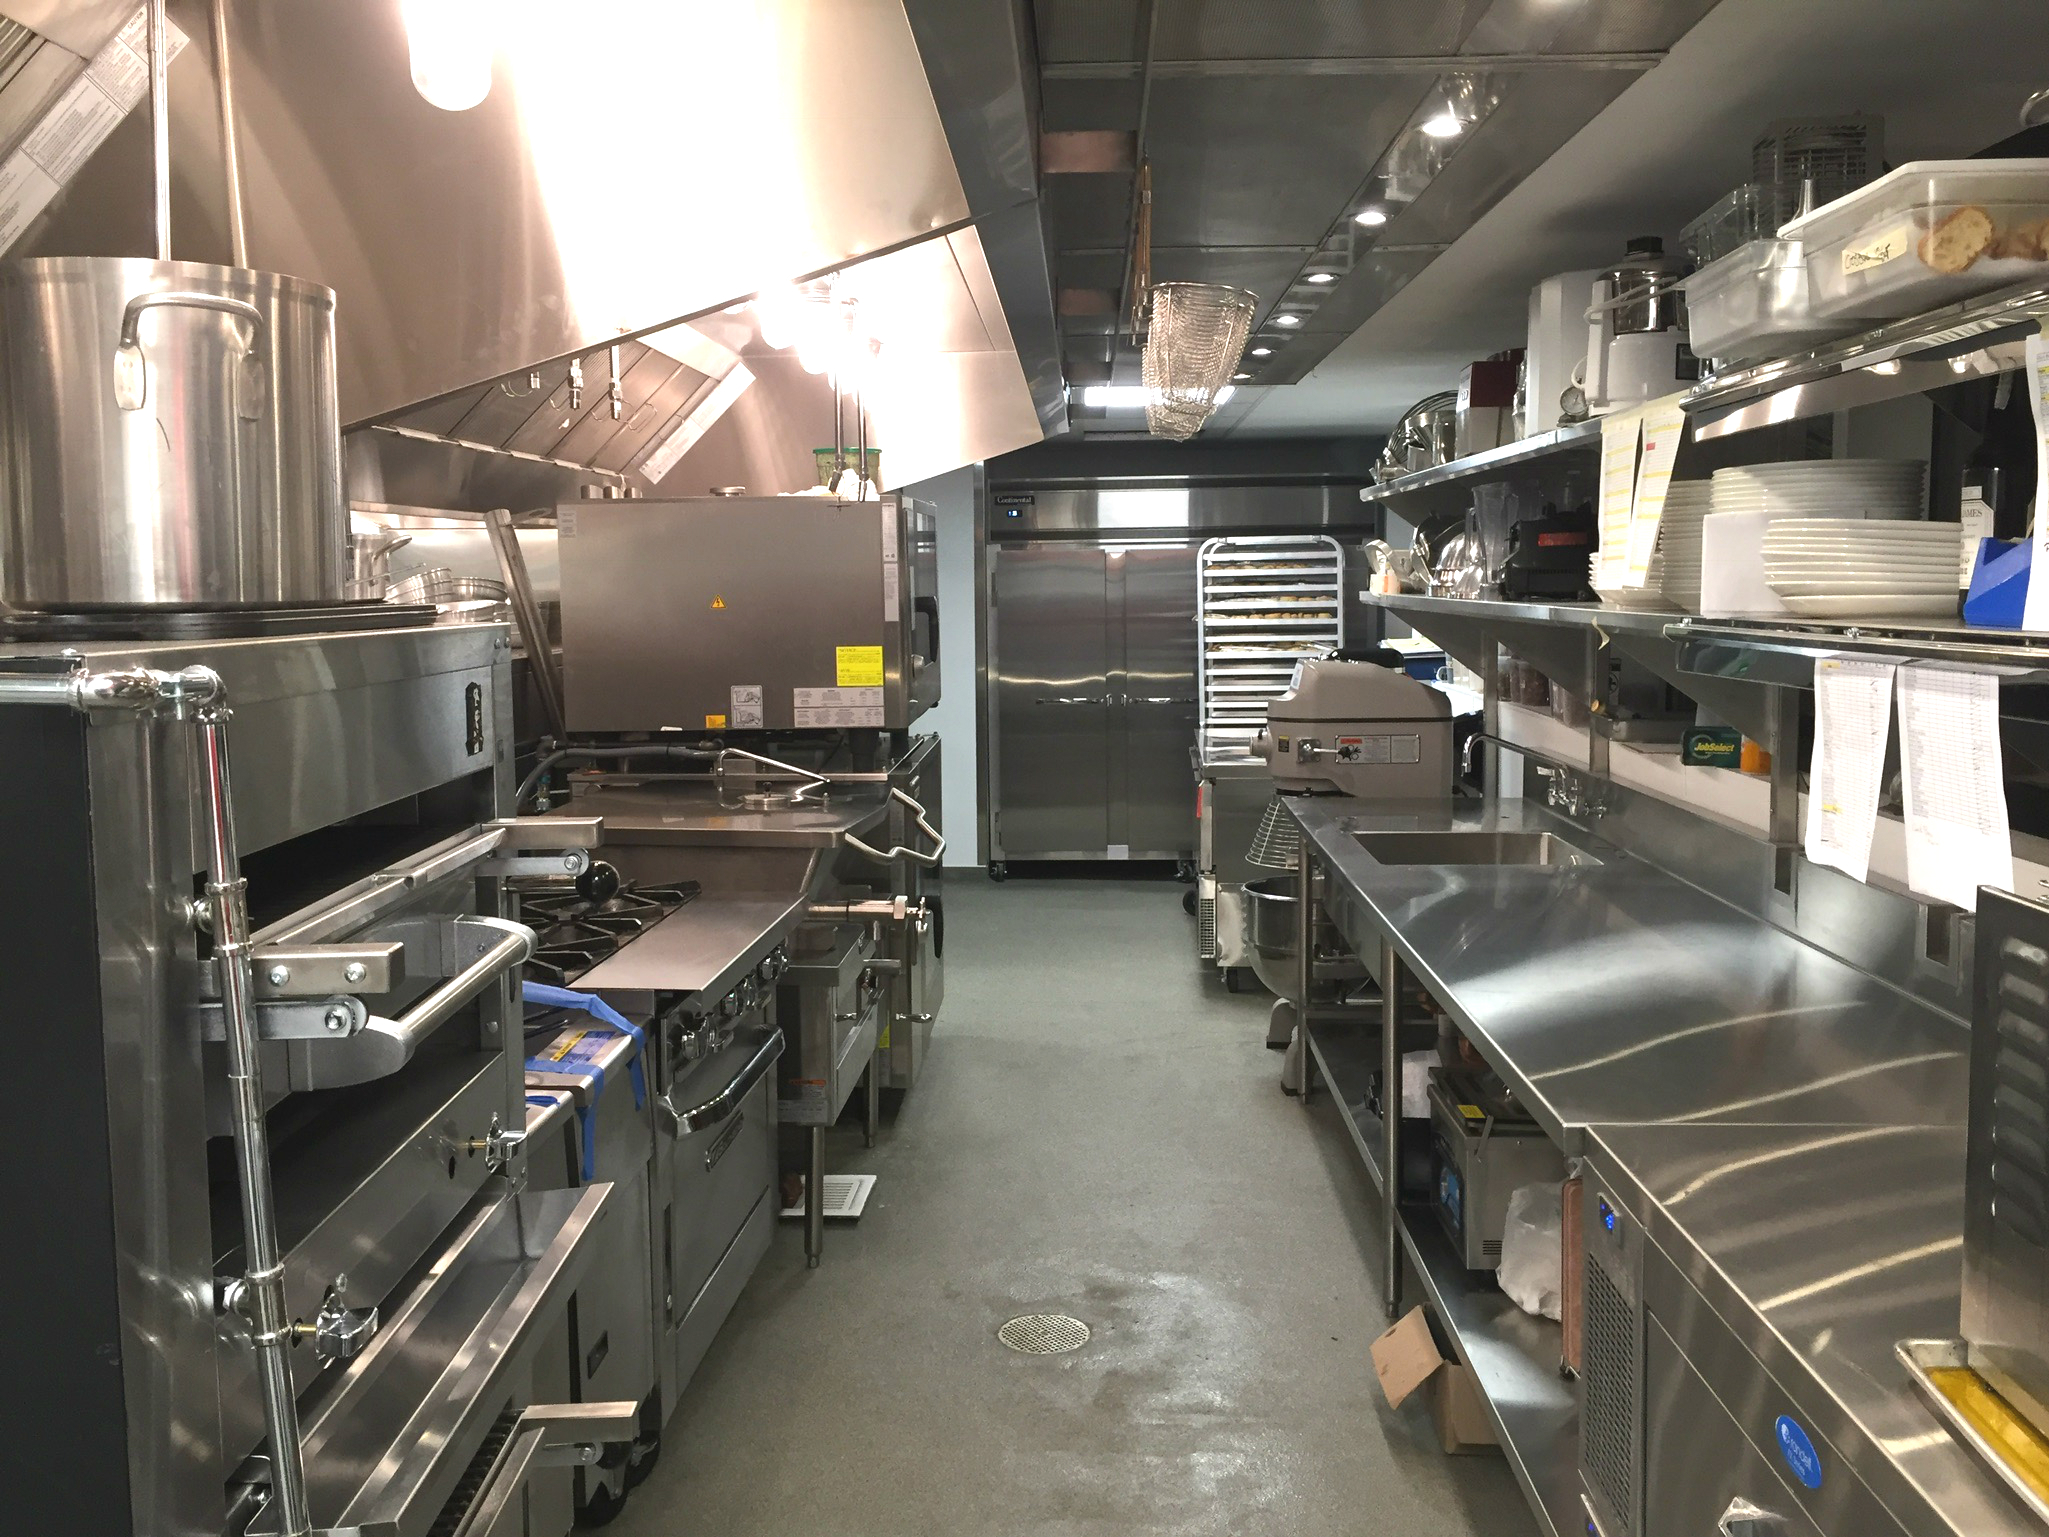 Rare Steak & Seafood renovated kitchen